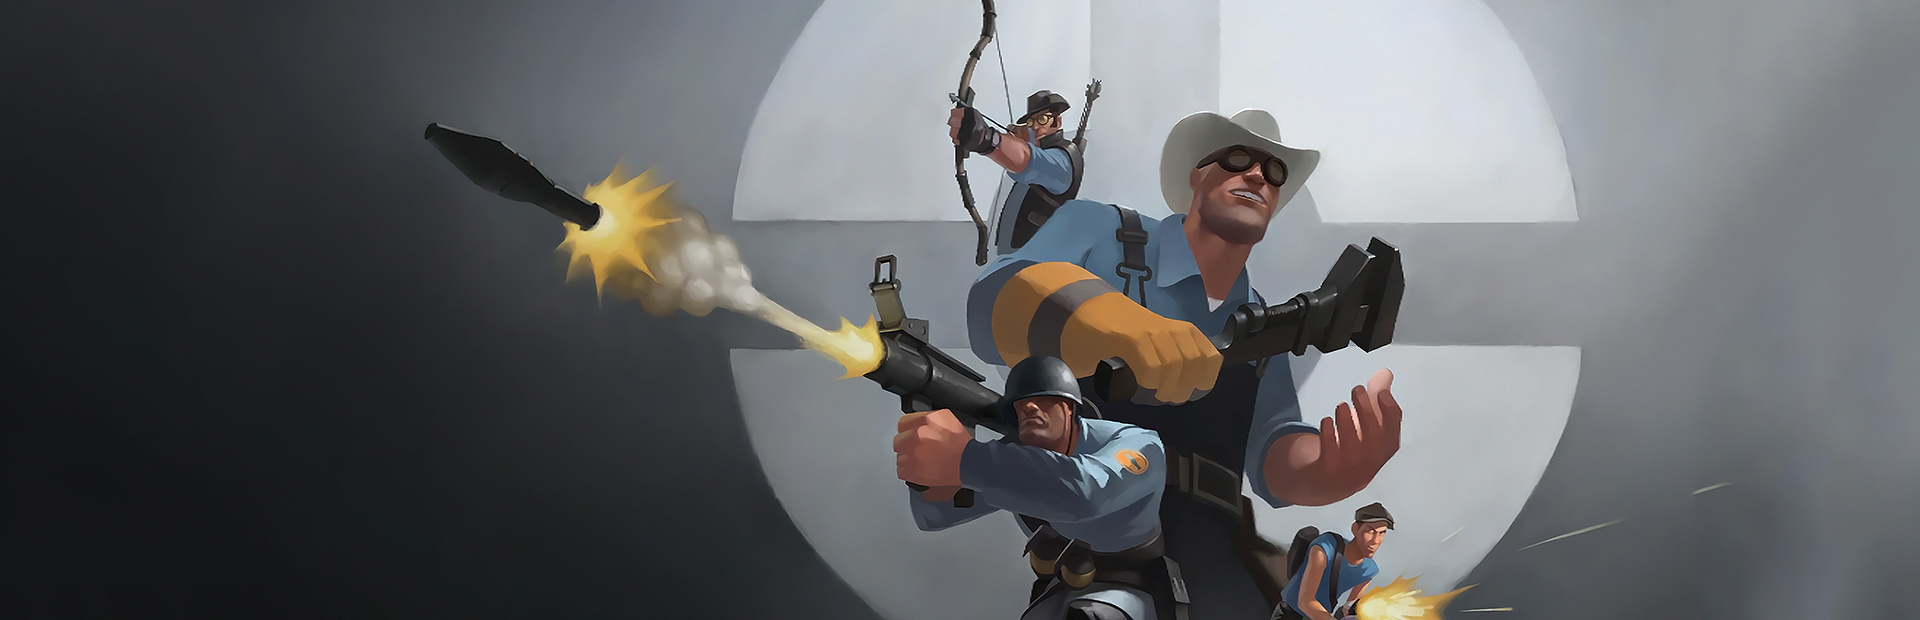 team fortress 2 classic logo